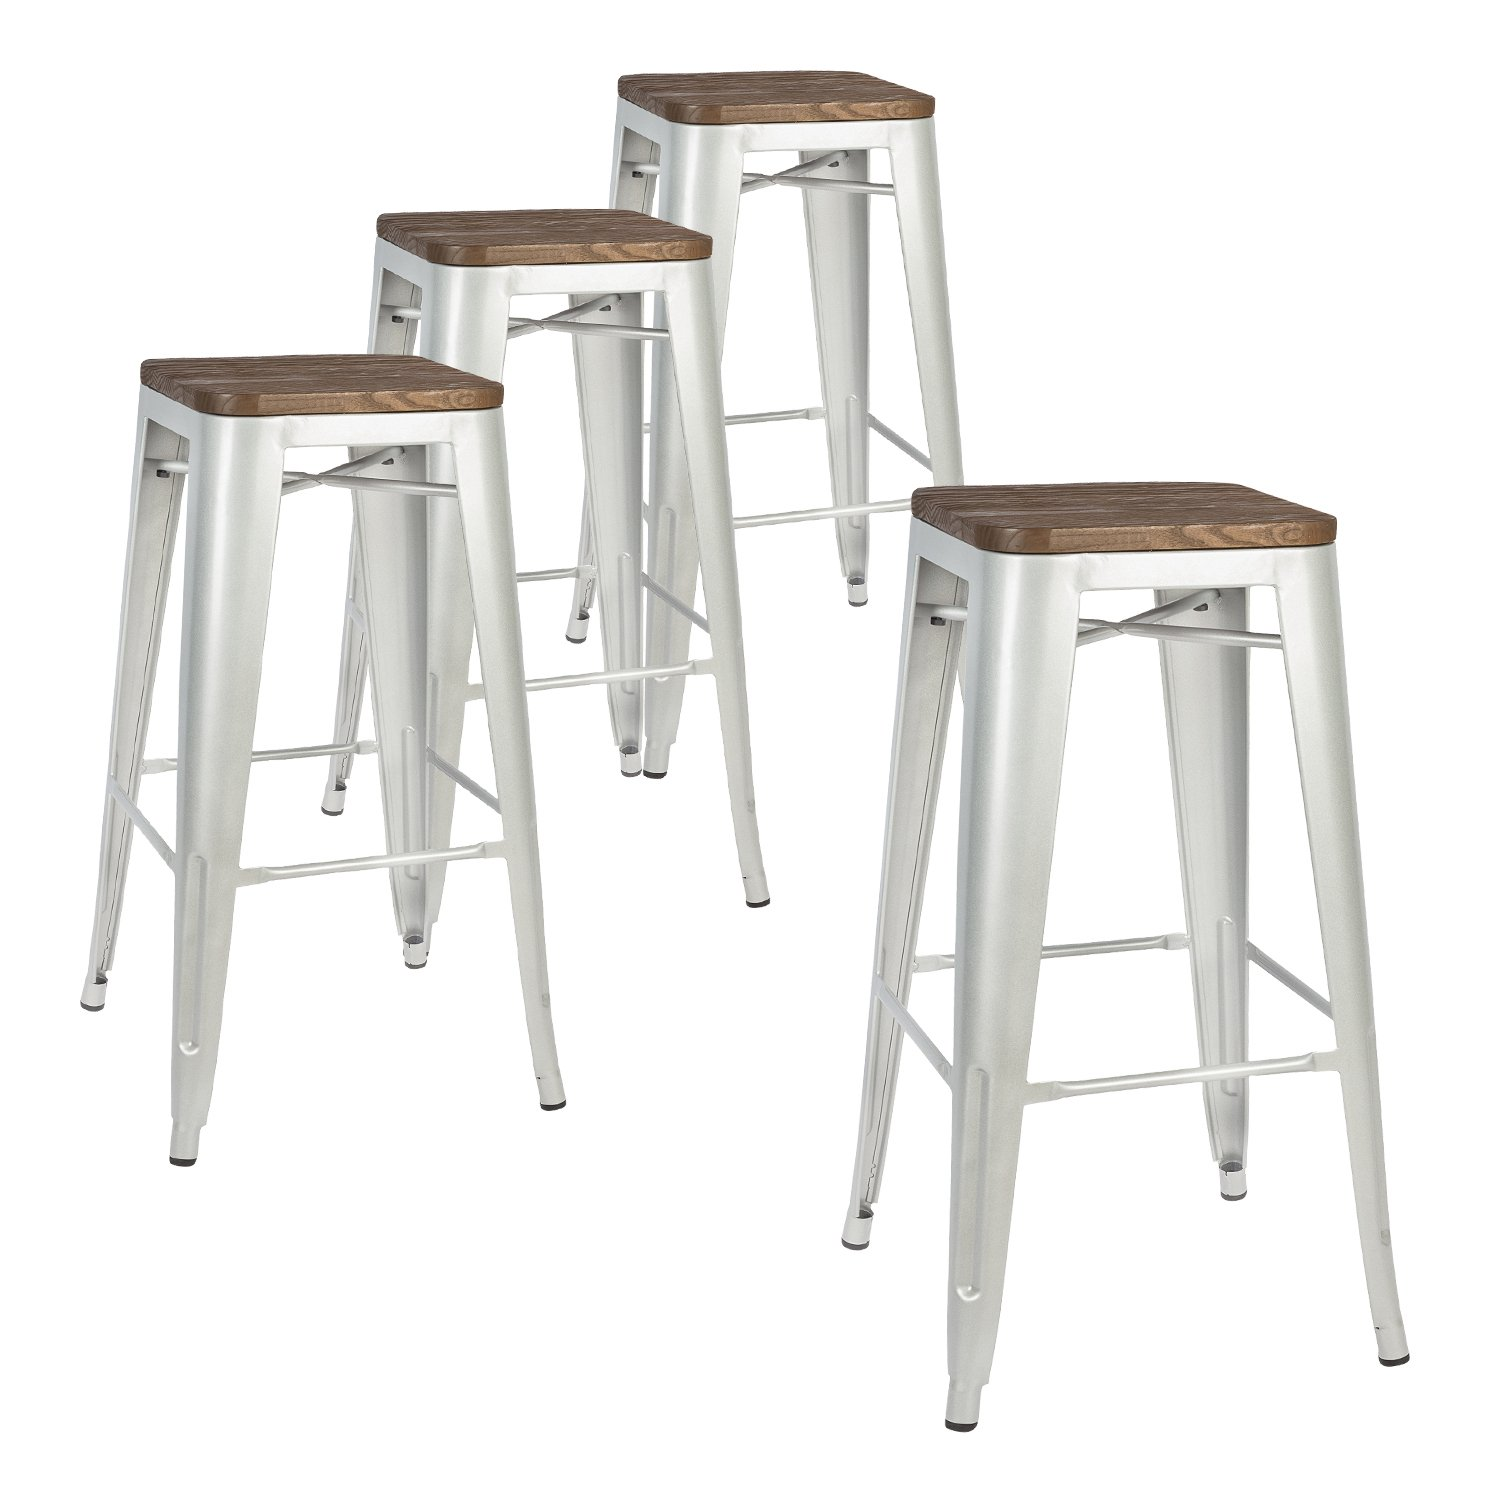 LCH 30 Inches Metal Industrial Bar Stools, Set of 4 Indoor/Outdoor Counter Stackable Barstool with Wood Seat, 500LB Limit, Silver by HLC